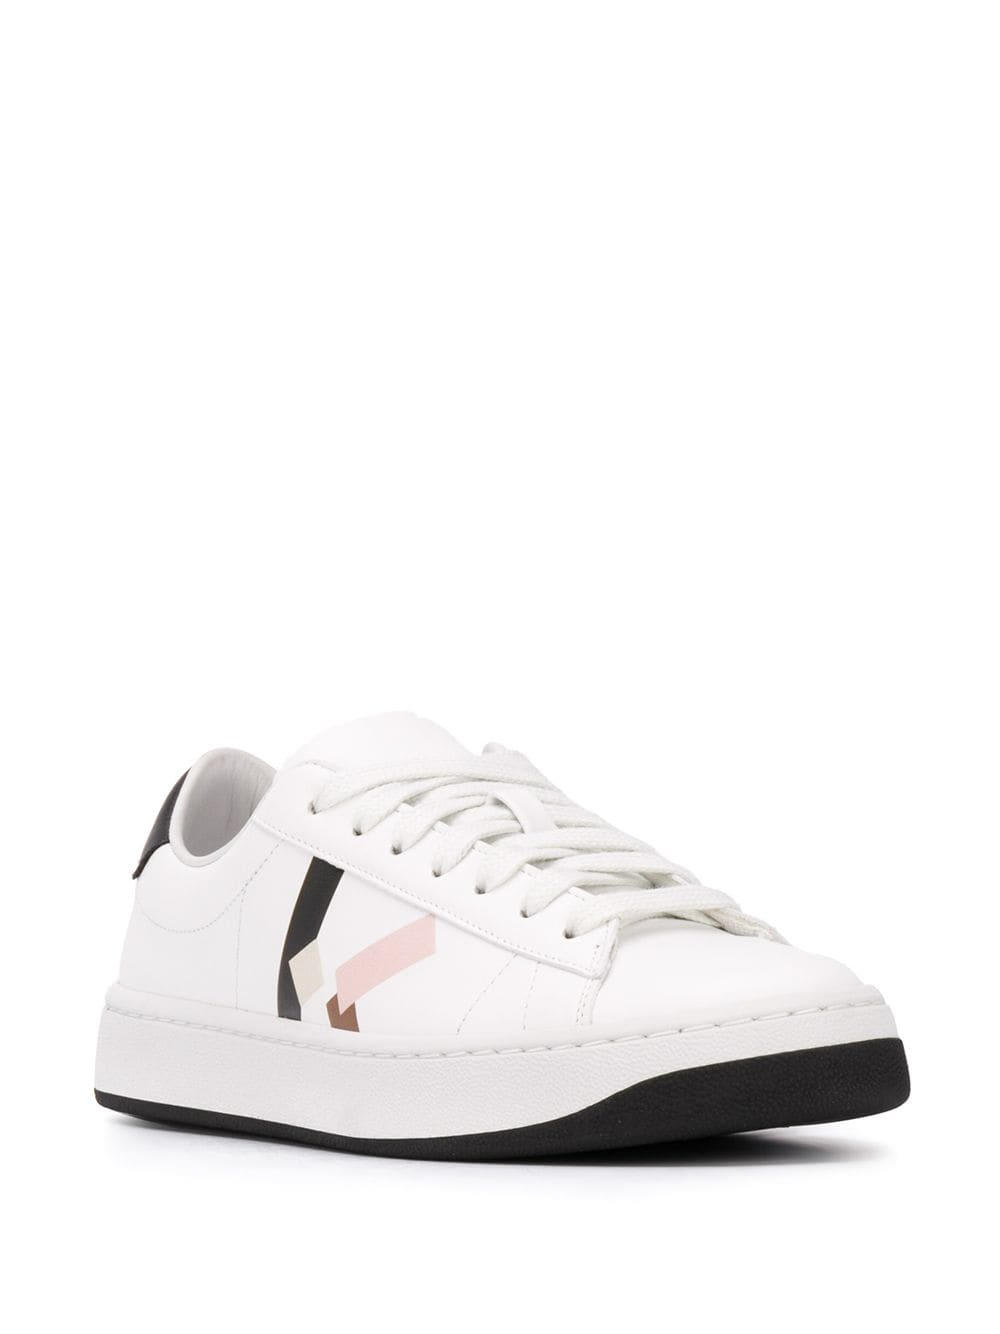 KENZO WOMEN K Logo Low Top Sneakers White - Maison De Fashion